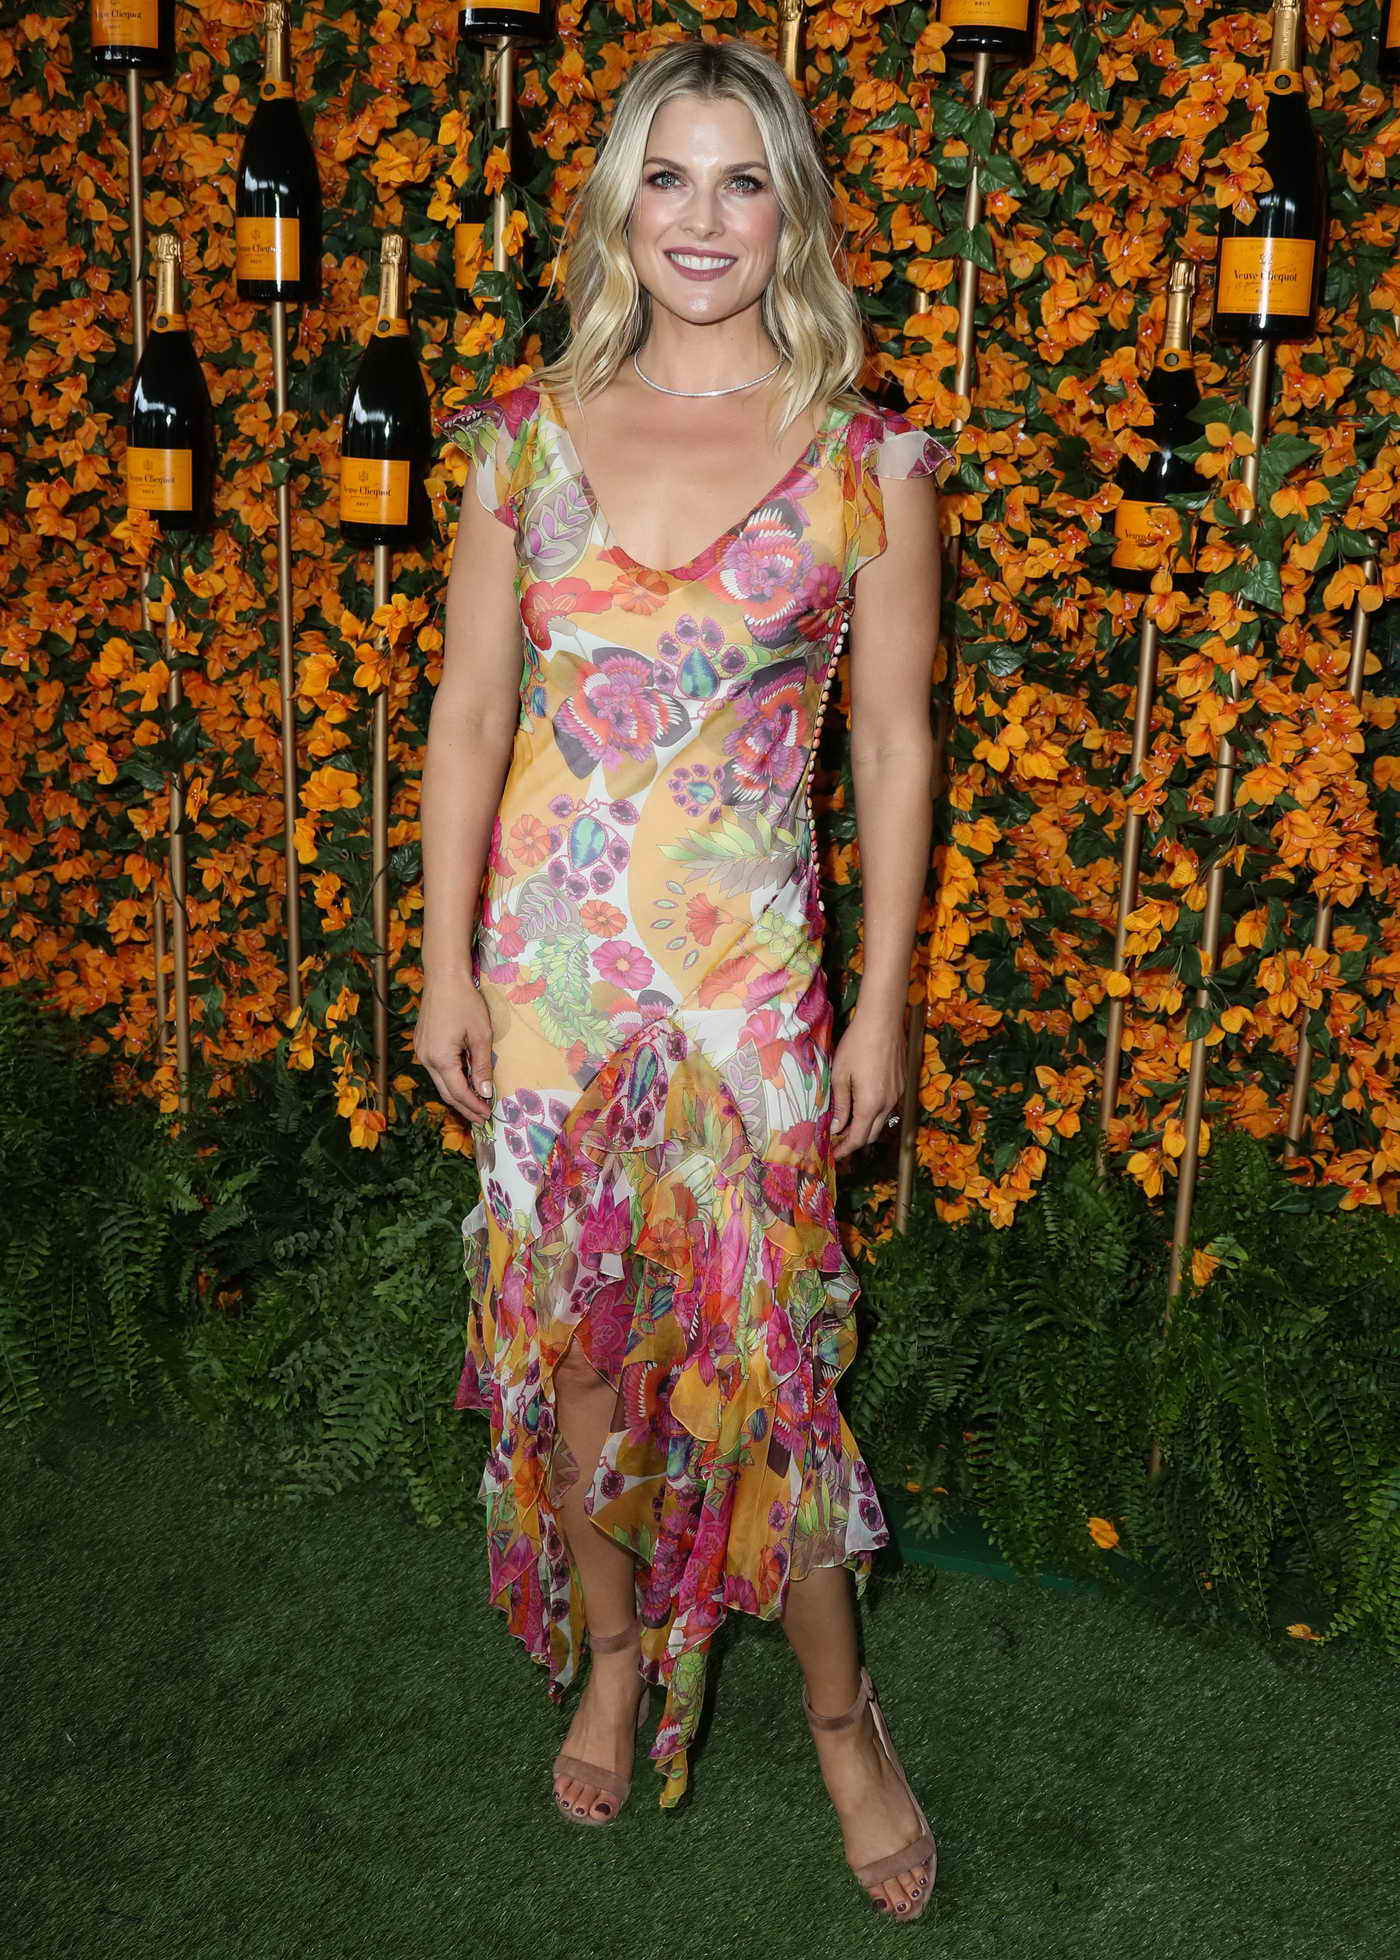 Ali Larter Attends the 9th Annual Veuve Clicquot Polo Classic in LA 10/06/2018